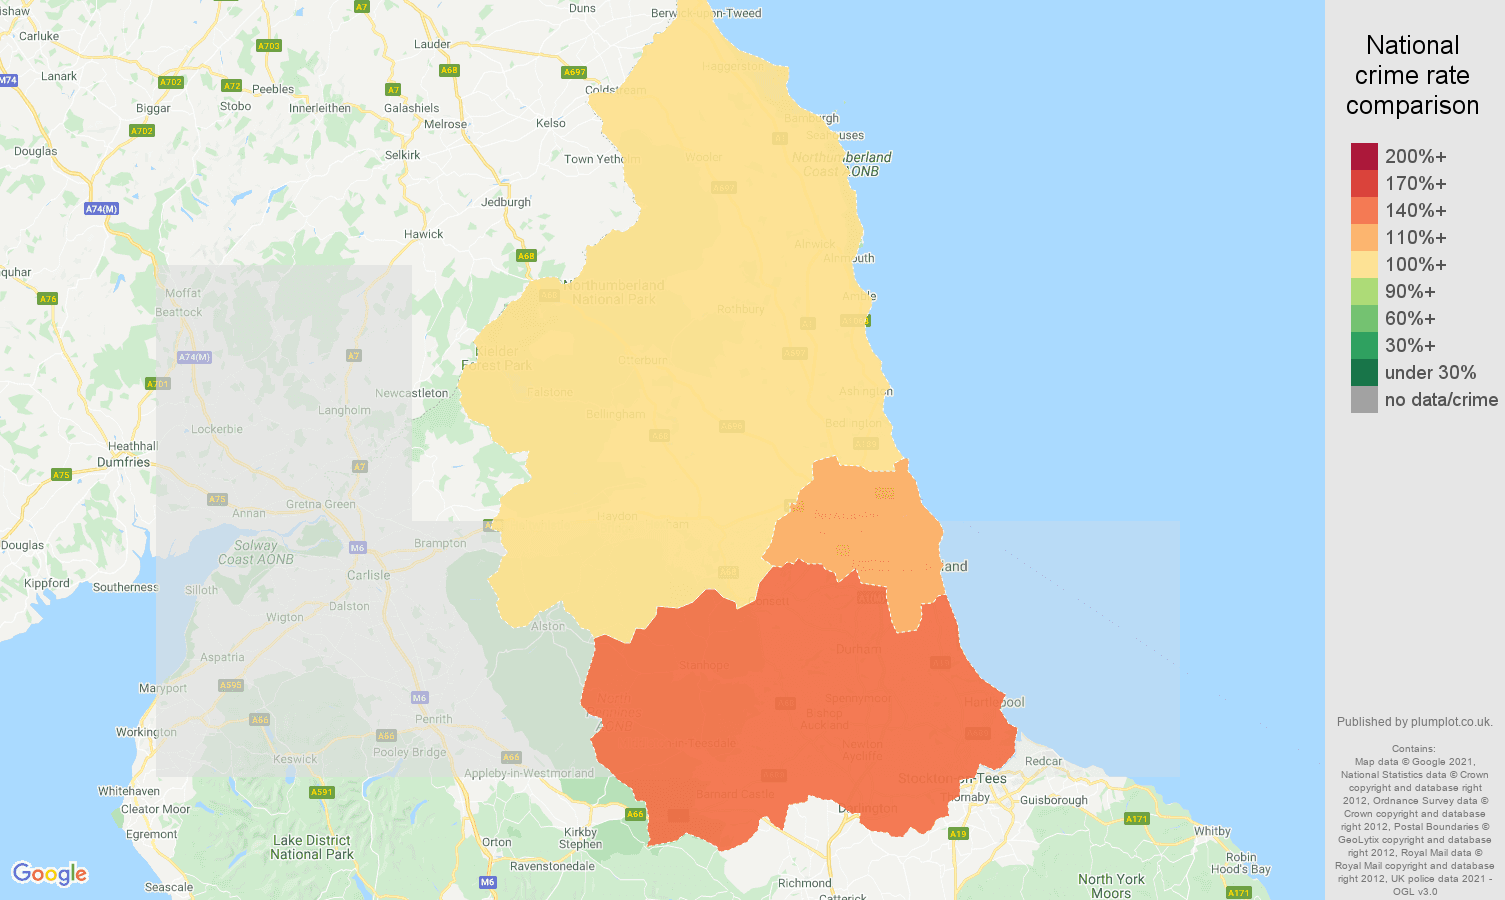 North East violent crime rate comparison map